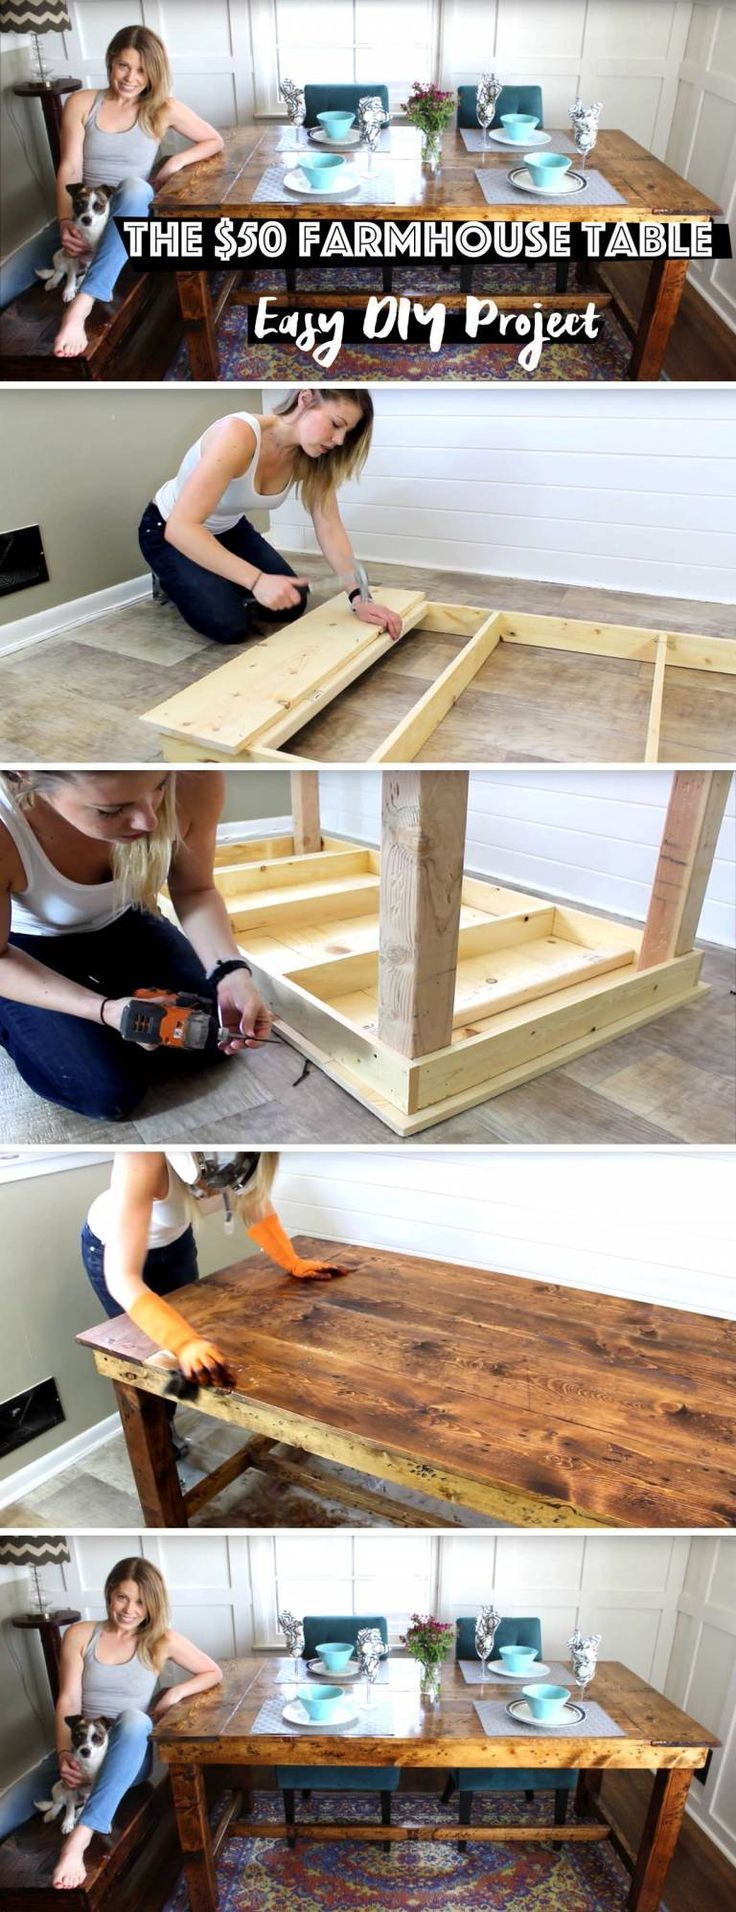 The $50 Farmhouse Table – Easy DIY Project DIY Farmhouse Table